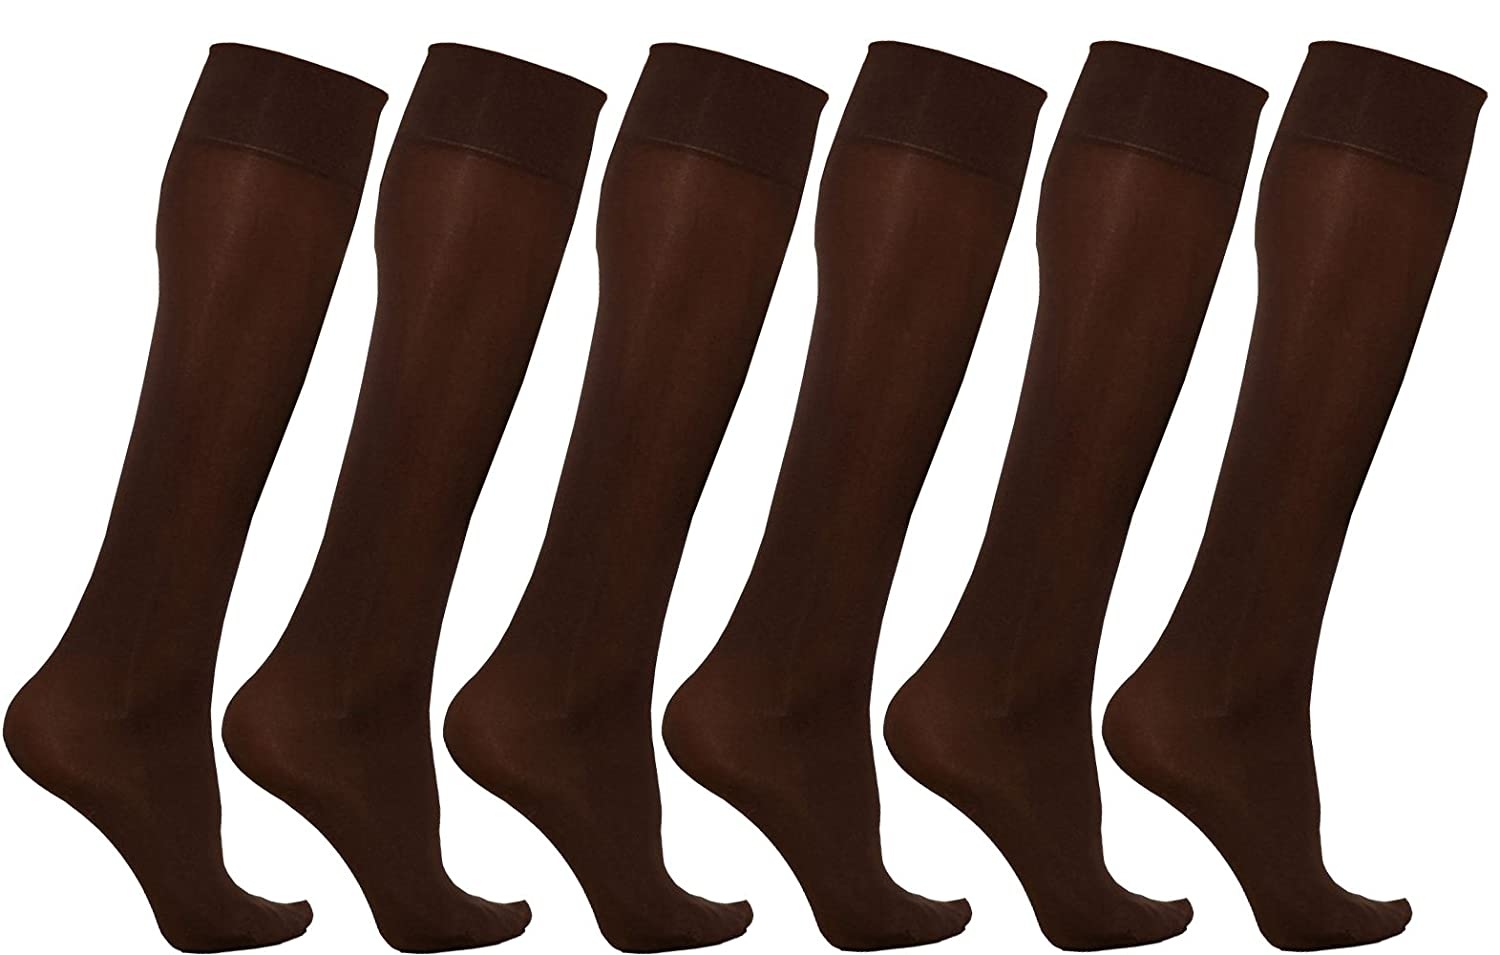 Women's Trouser Socks, 6 Pairs, Opaque Stretchy Nylon Knee High, Many Colors Women's Trouser Socks